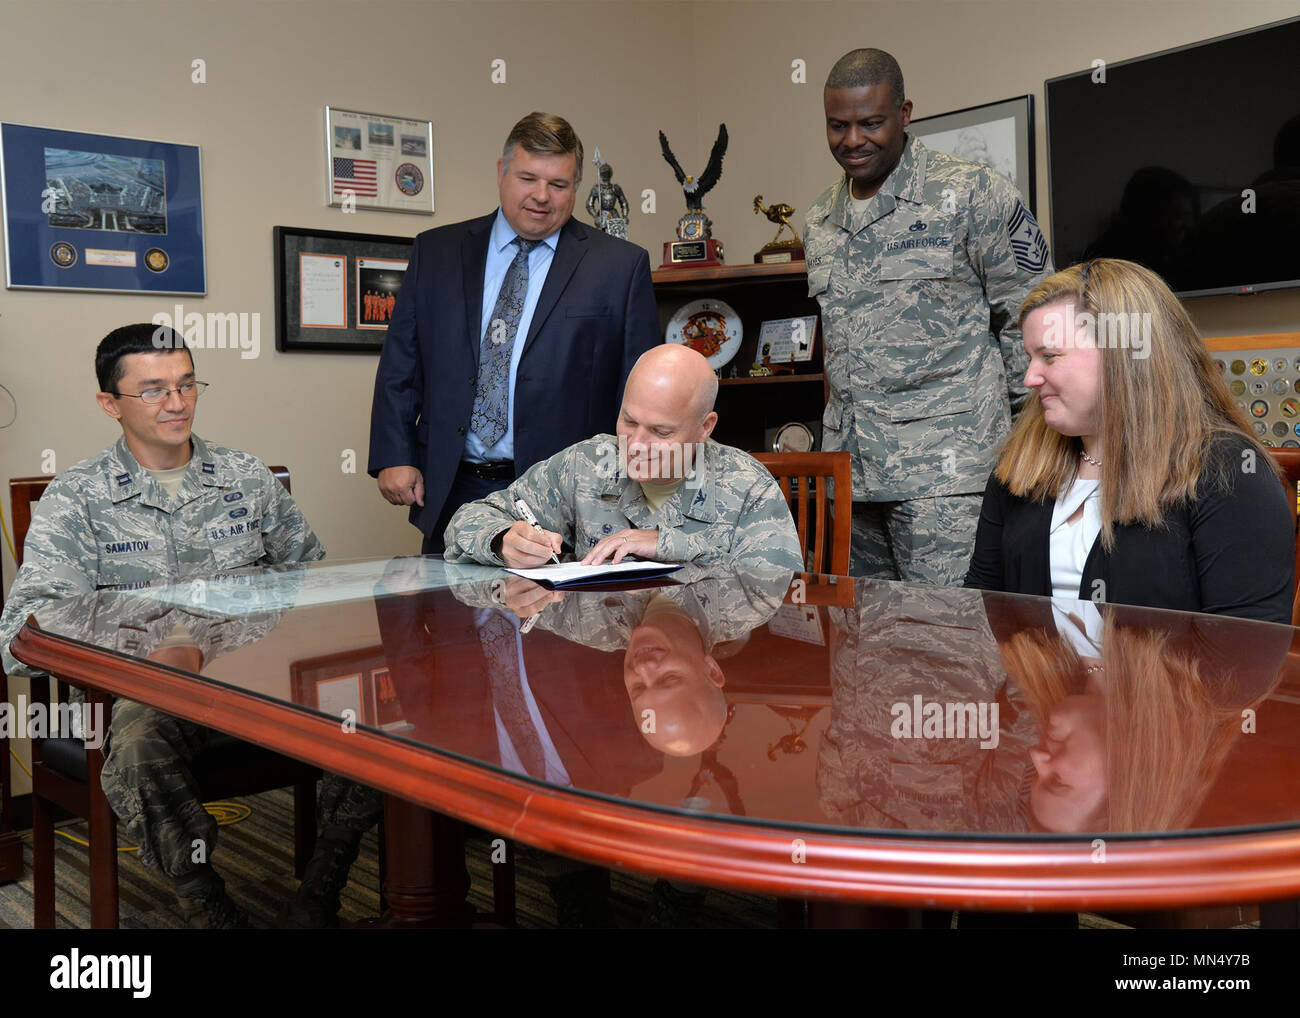 """Col. Roman L. Hund, installation commander, signs a Women's History Month proclamation in his office Aug. 17, while Capt. Abror Samatov and Kerryn Loan, committee members, Tom Fredericks, 66th Air Base Group deputy director, and Command Chief Master Sgt. Henry Hayes look on. The theme for this year's WHM campaign is """"Celebrating Women's Right to Vote."""" (U.S. Air Force photo by Linda LaBonte Britt) Stock Photo"""